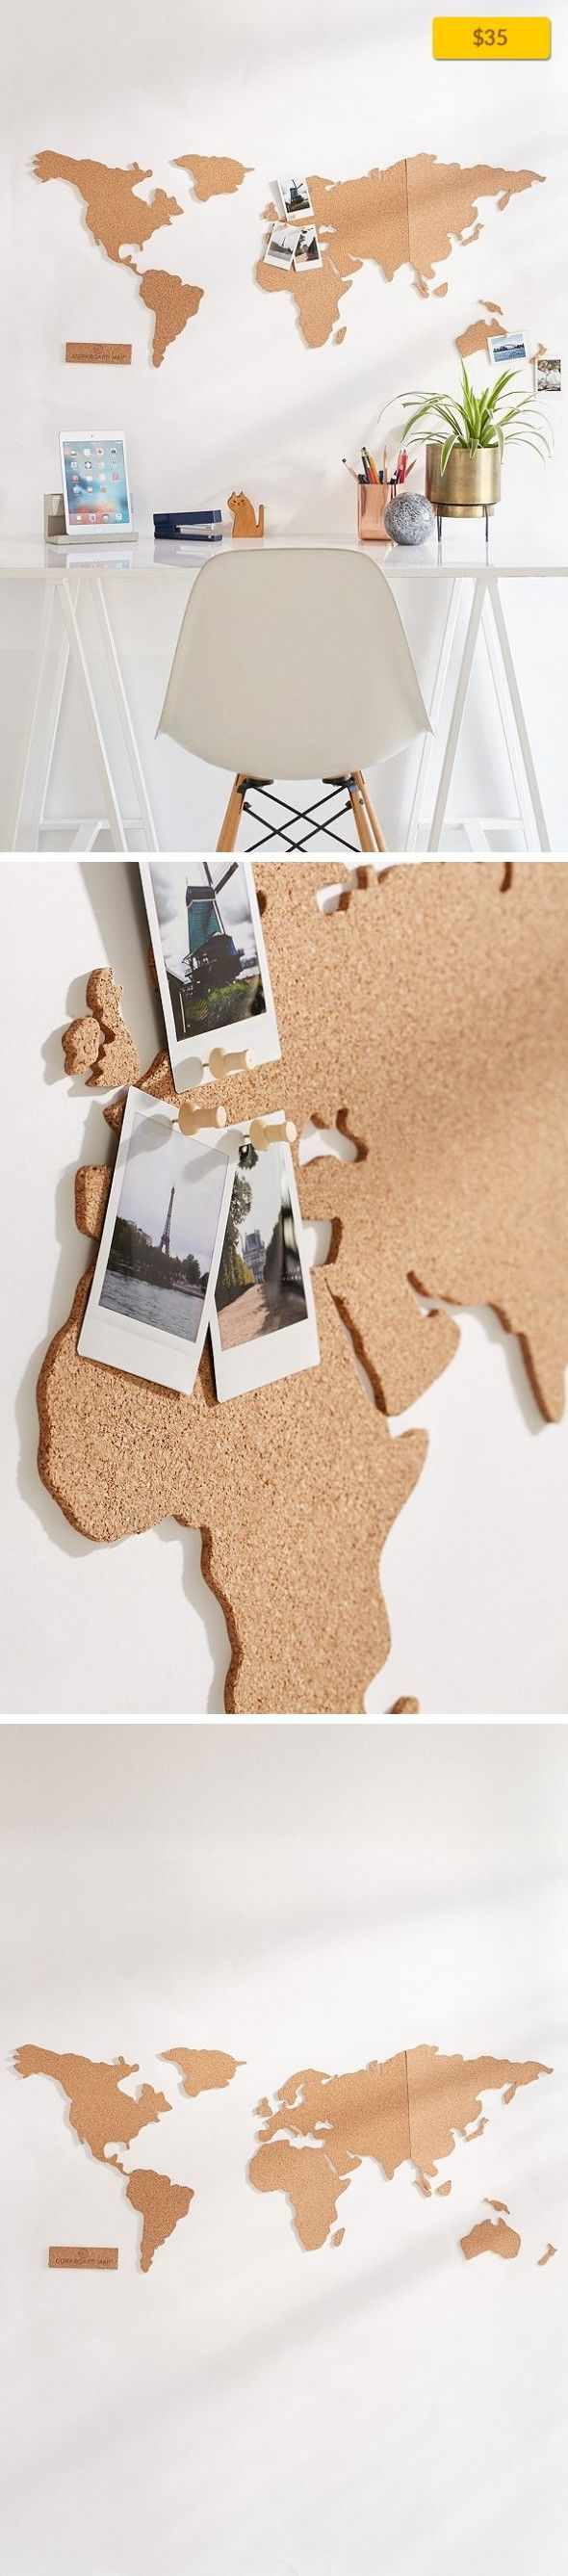 Chile Location On World Map%0A Cork Board World Map On Campus  Desk   Storage Selfadhesive world map cork  board with    push pins for adding photos  postcards  tickets   more